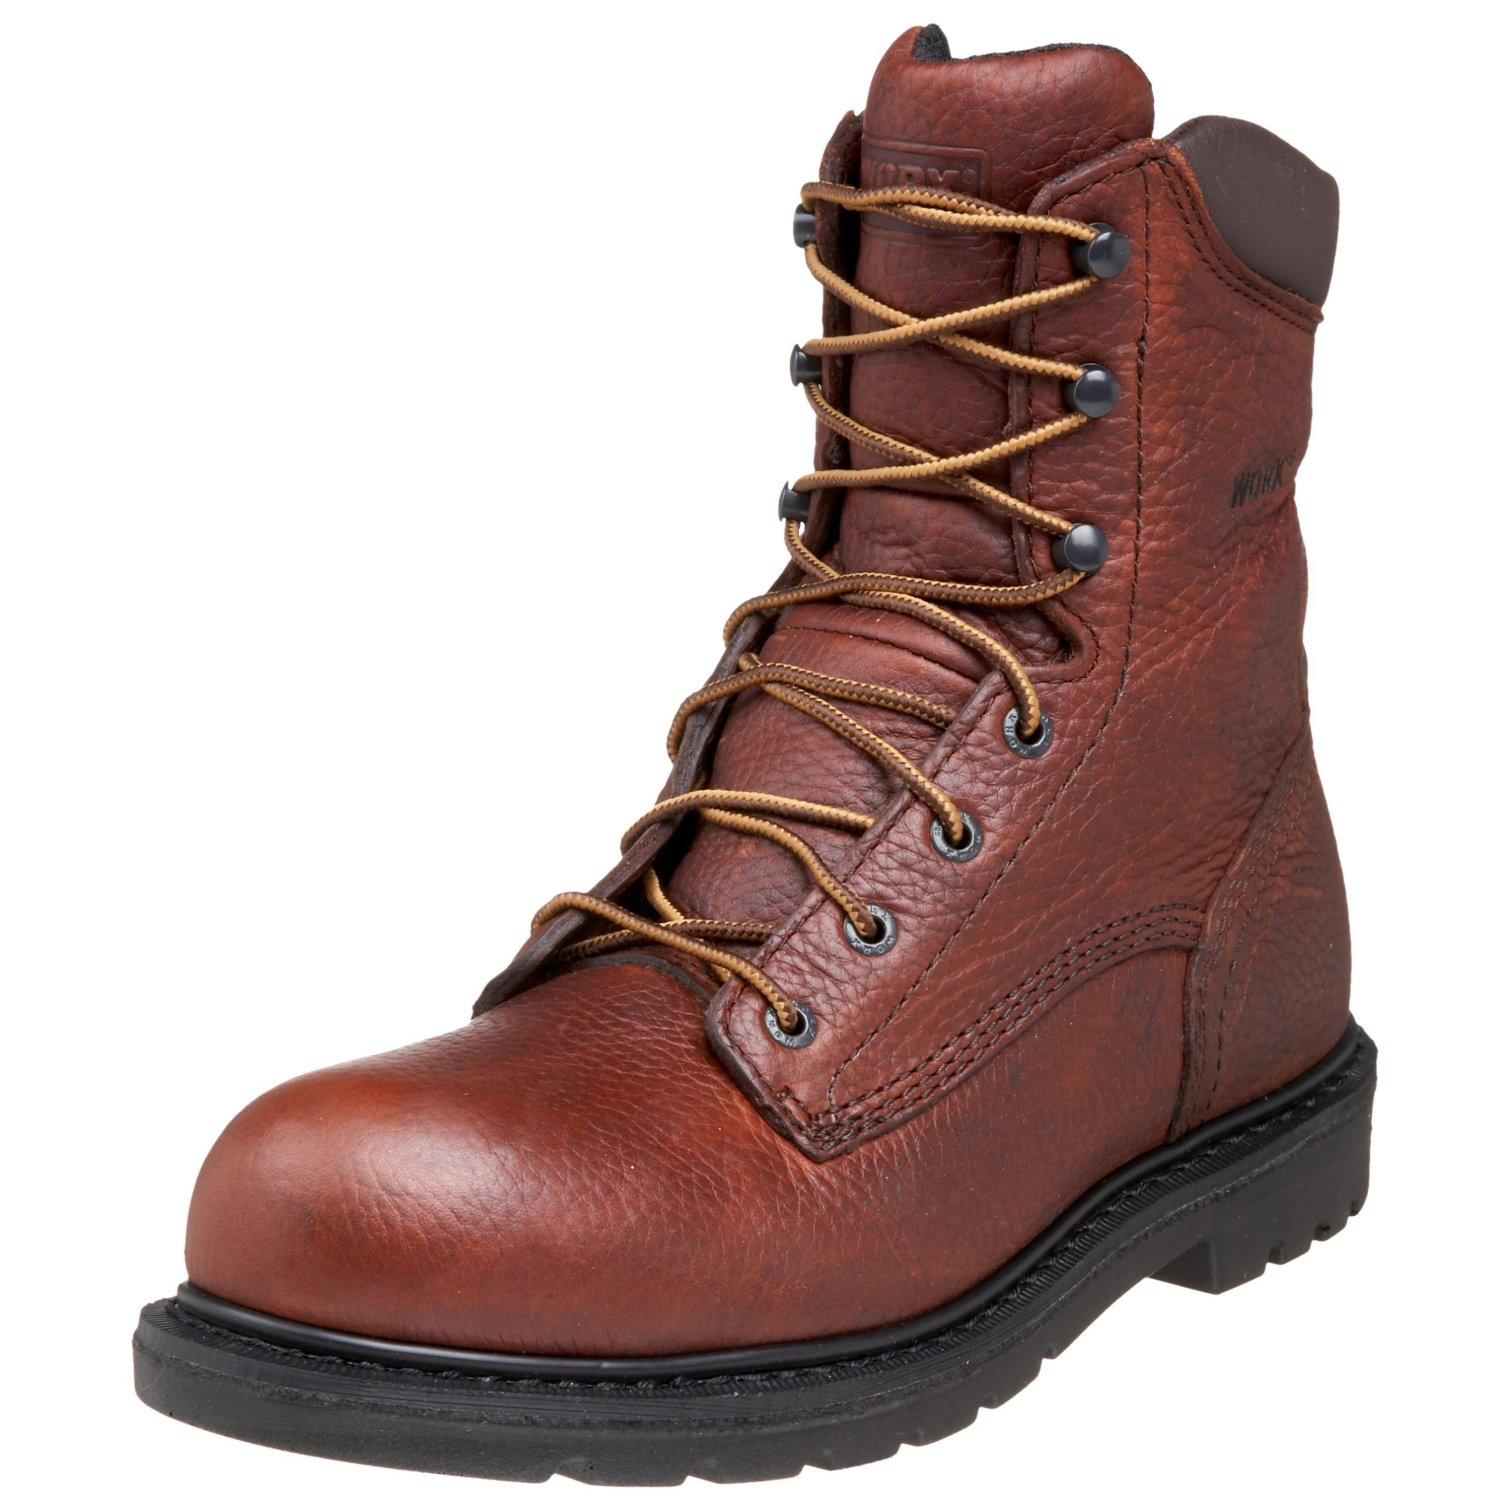 Red Wing Steel Toe Boots For Sale - Wigs By Unique